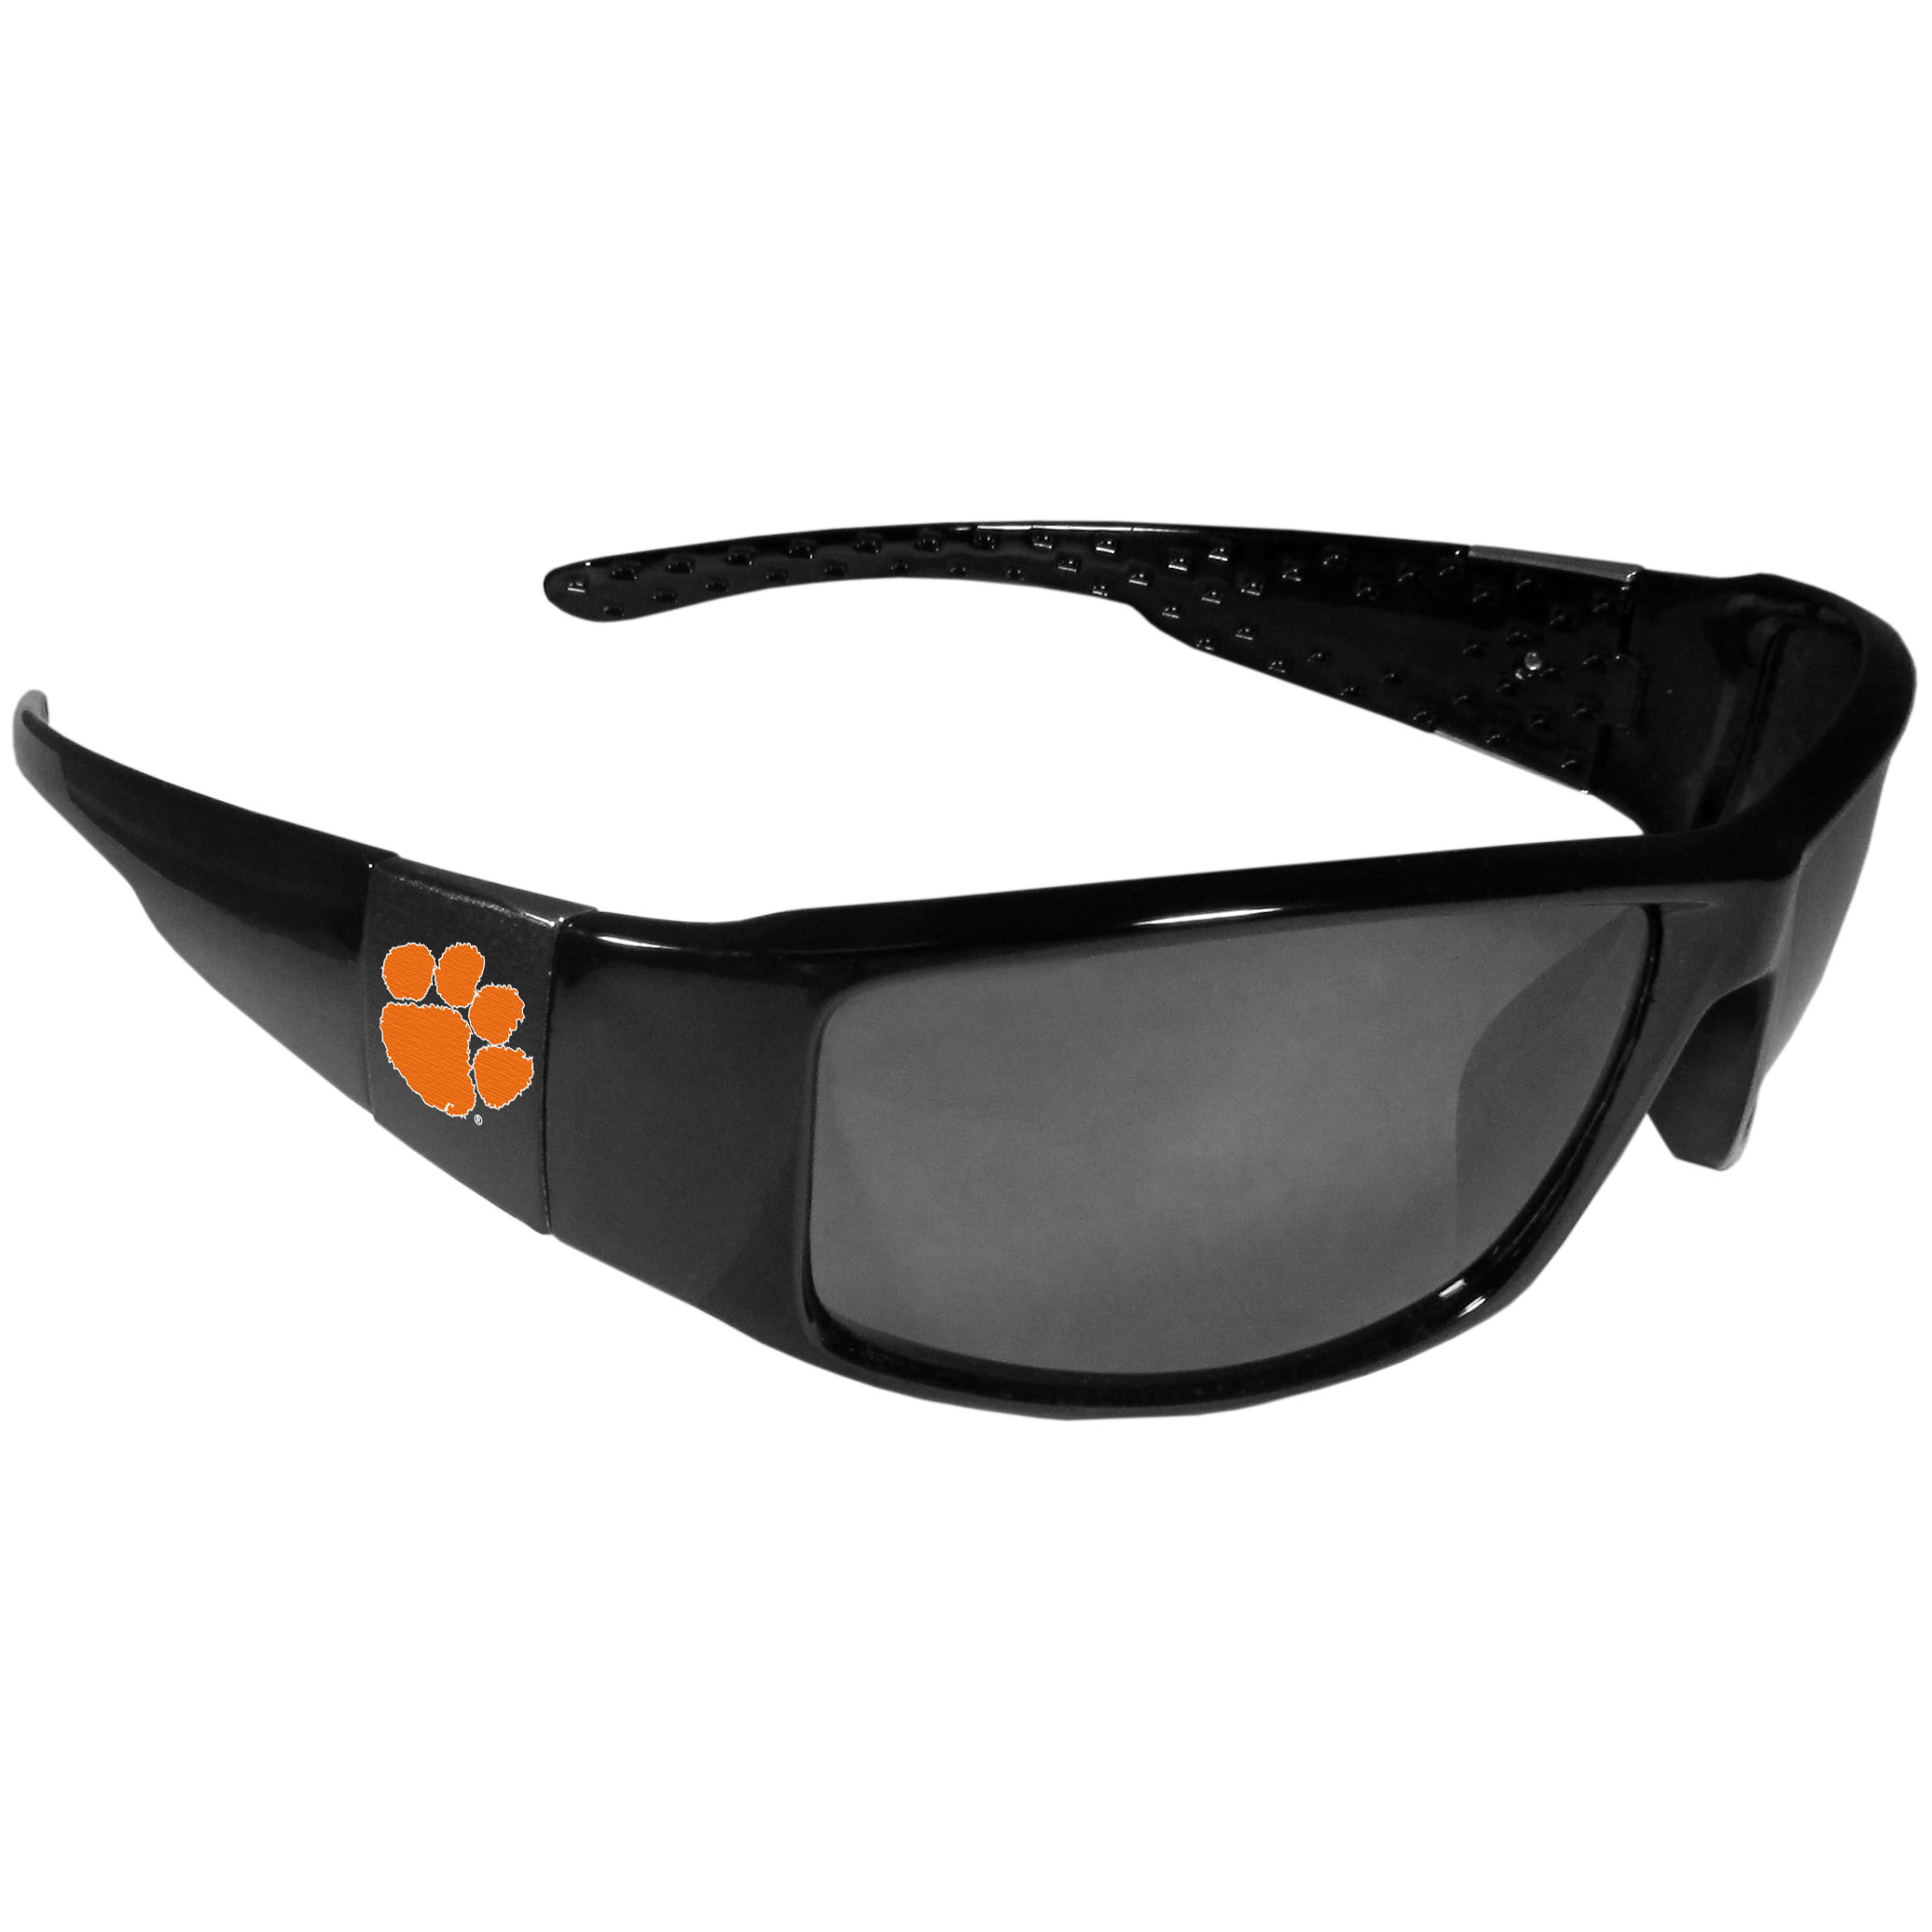 Clemson Tigers Black Wrap Sunglasses - These designer inspired frames have a sleek look in all black with  Clemson Tigers shields on each arm with a printed logo. The shades are perfect for any outdoor activity like; golfing, driving, hiking, fishing or cheering on the team at a tailgating event or at a home game day BBQ with a lens rating of 100% UVA/UVB for maximum UV protection. The high-quality frames are as durable as they are fashionable and with their classic look they are the perfect fan accessory that can be worn everyday for every occasion.